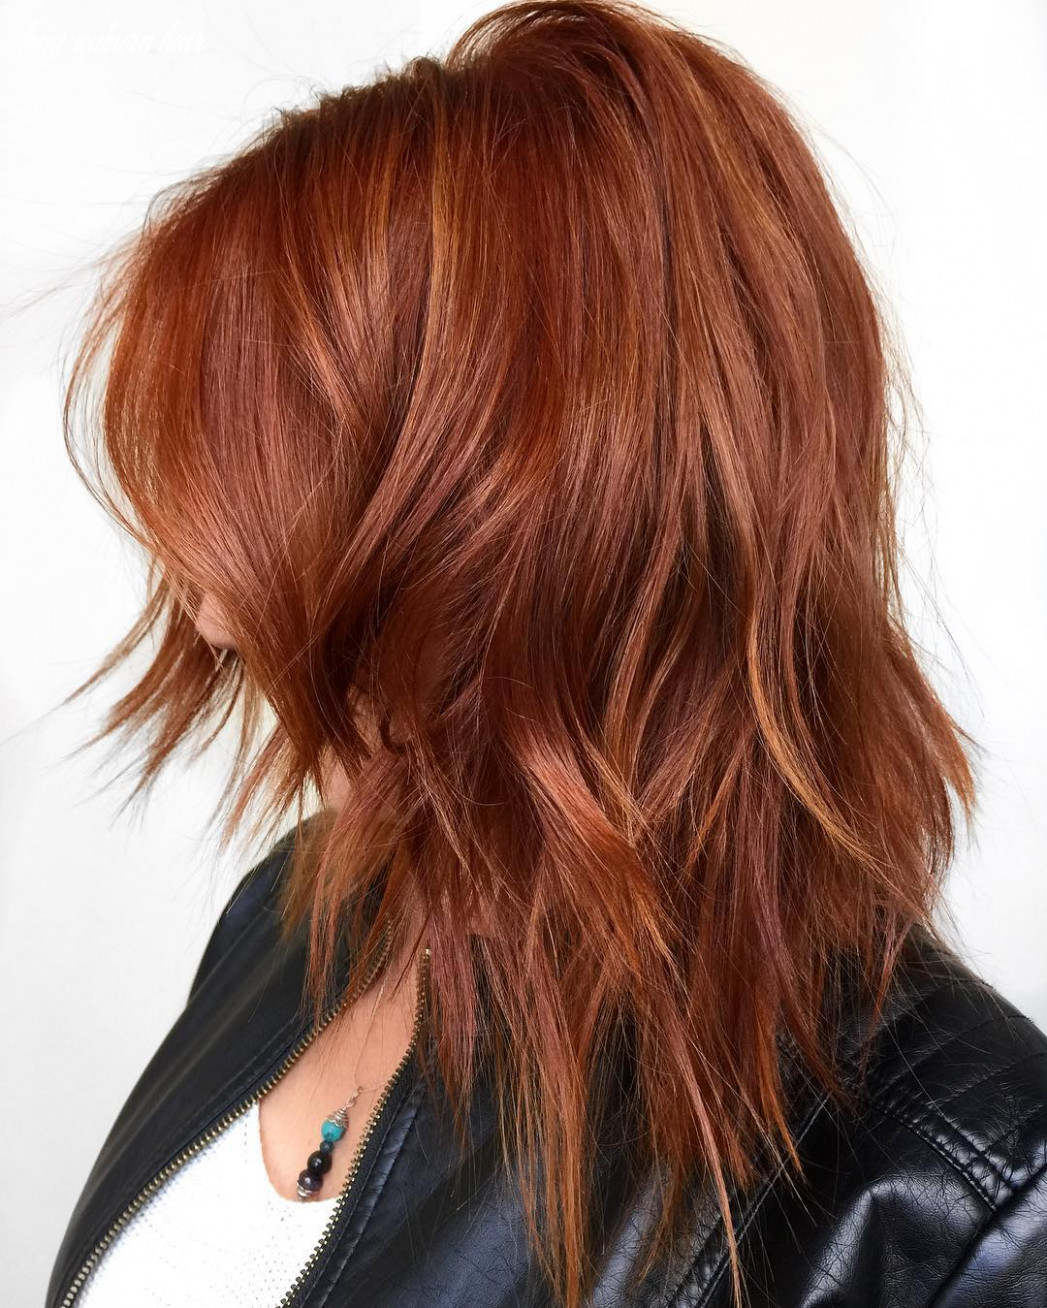 12 Auburn Hair Colors to Emphasize Your Individuality